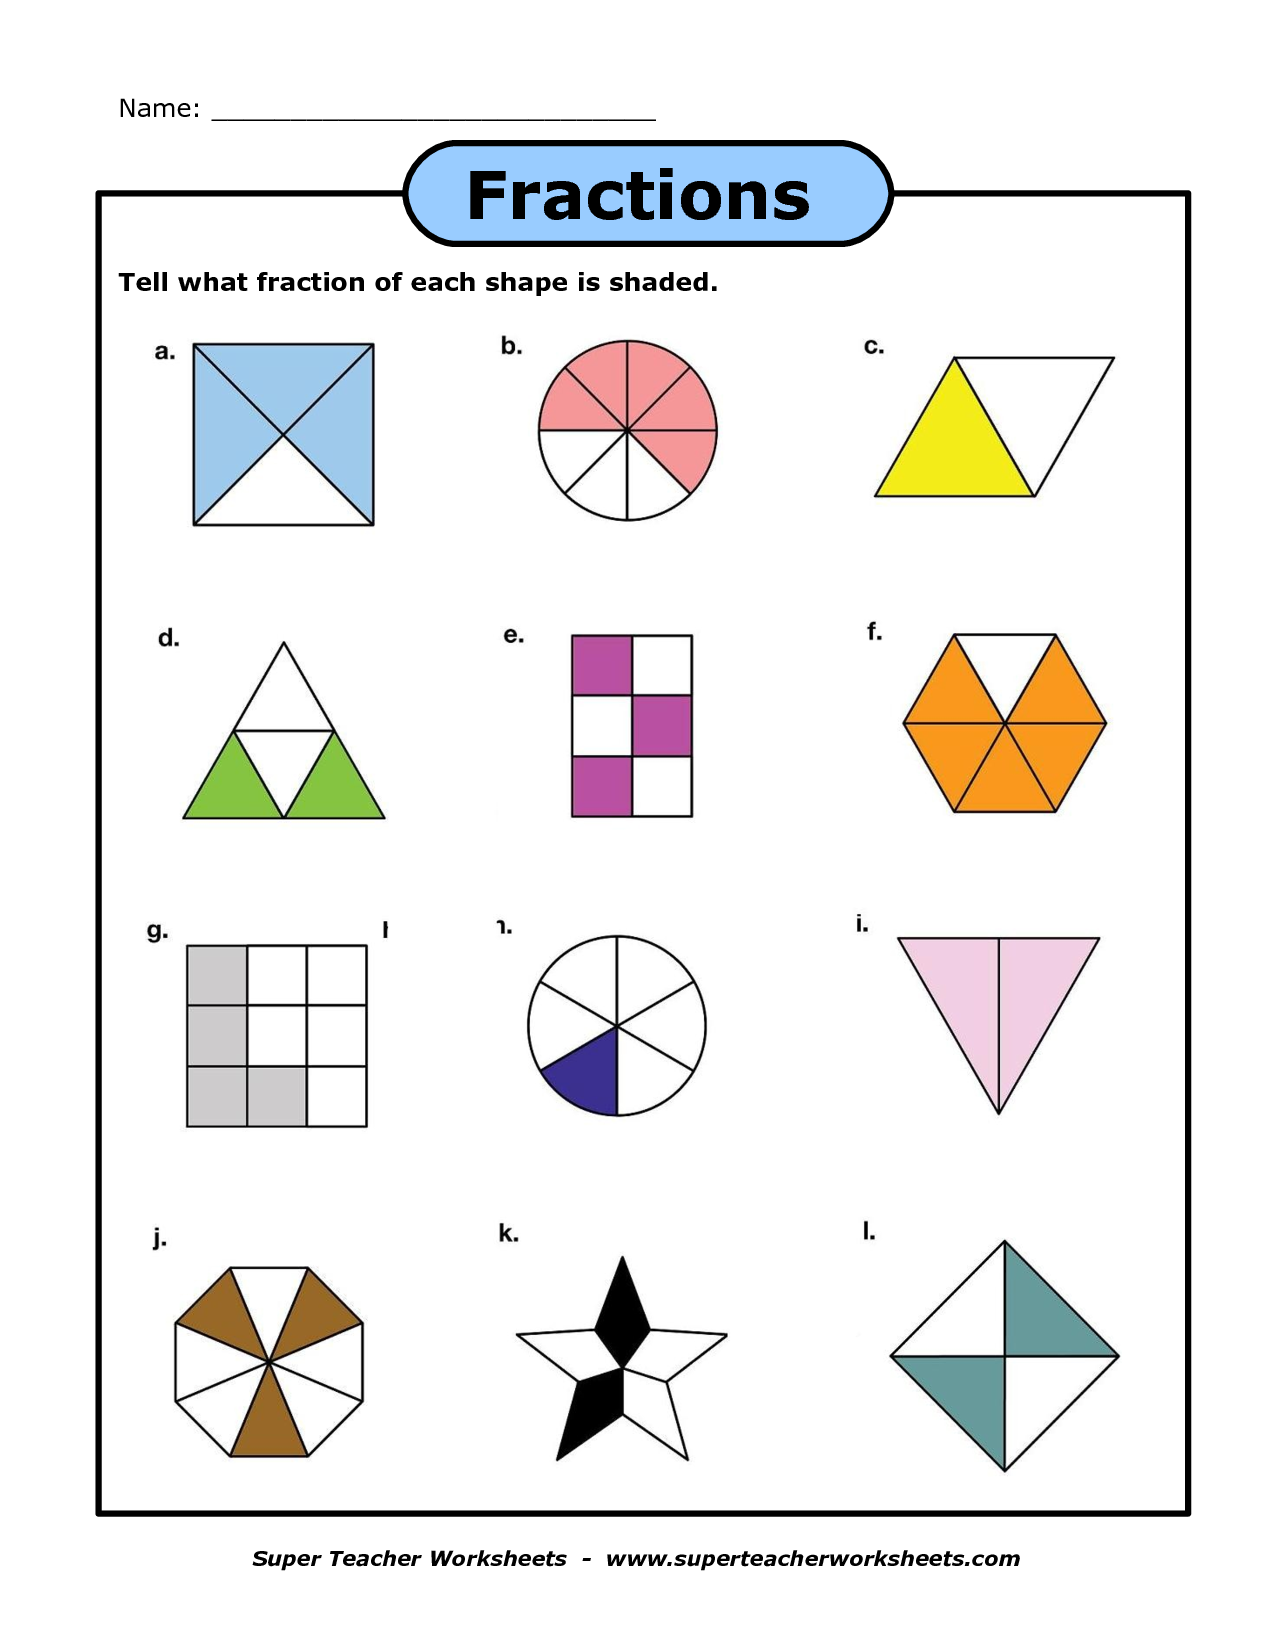 A fraction worksheet Super Teacher Worksheets – Fraction Shading Worksheets